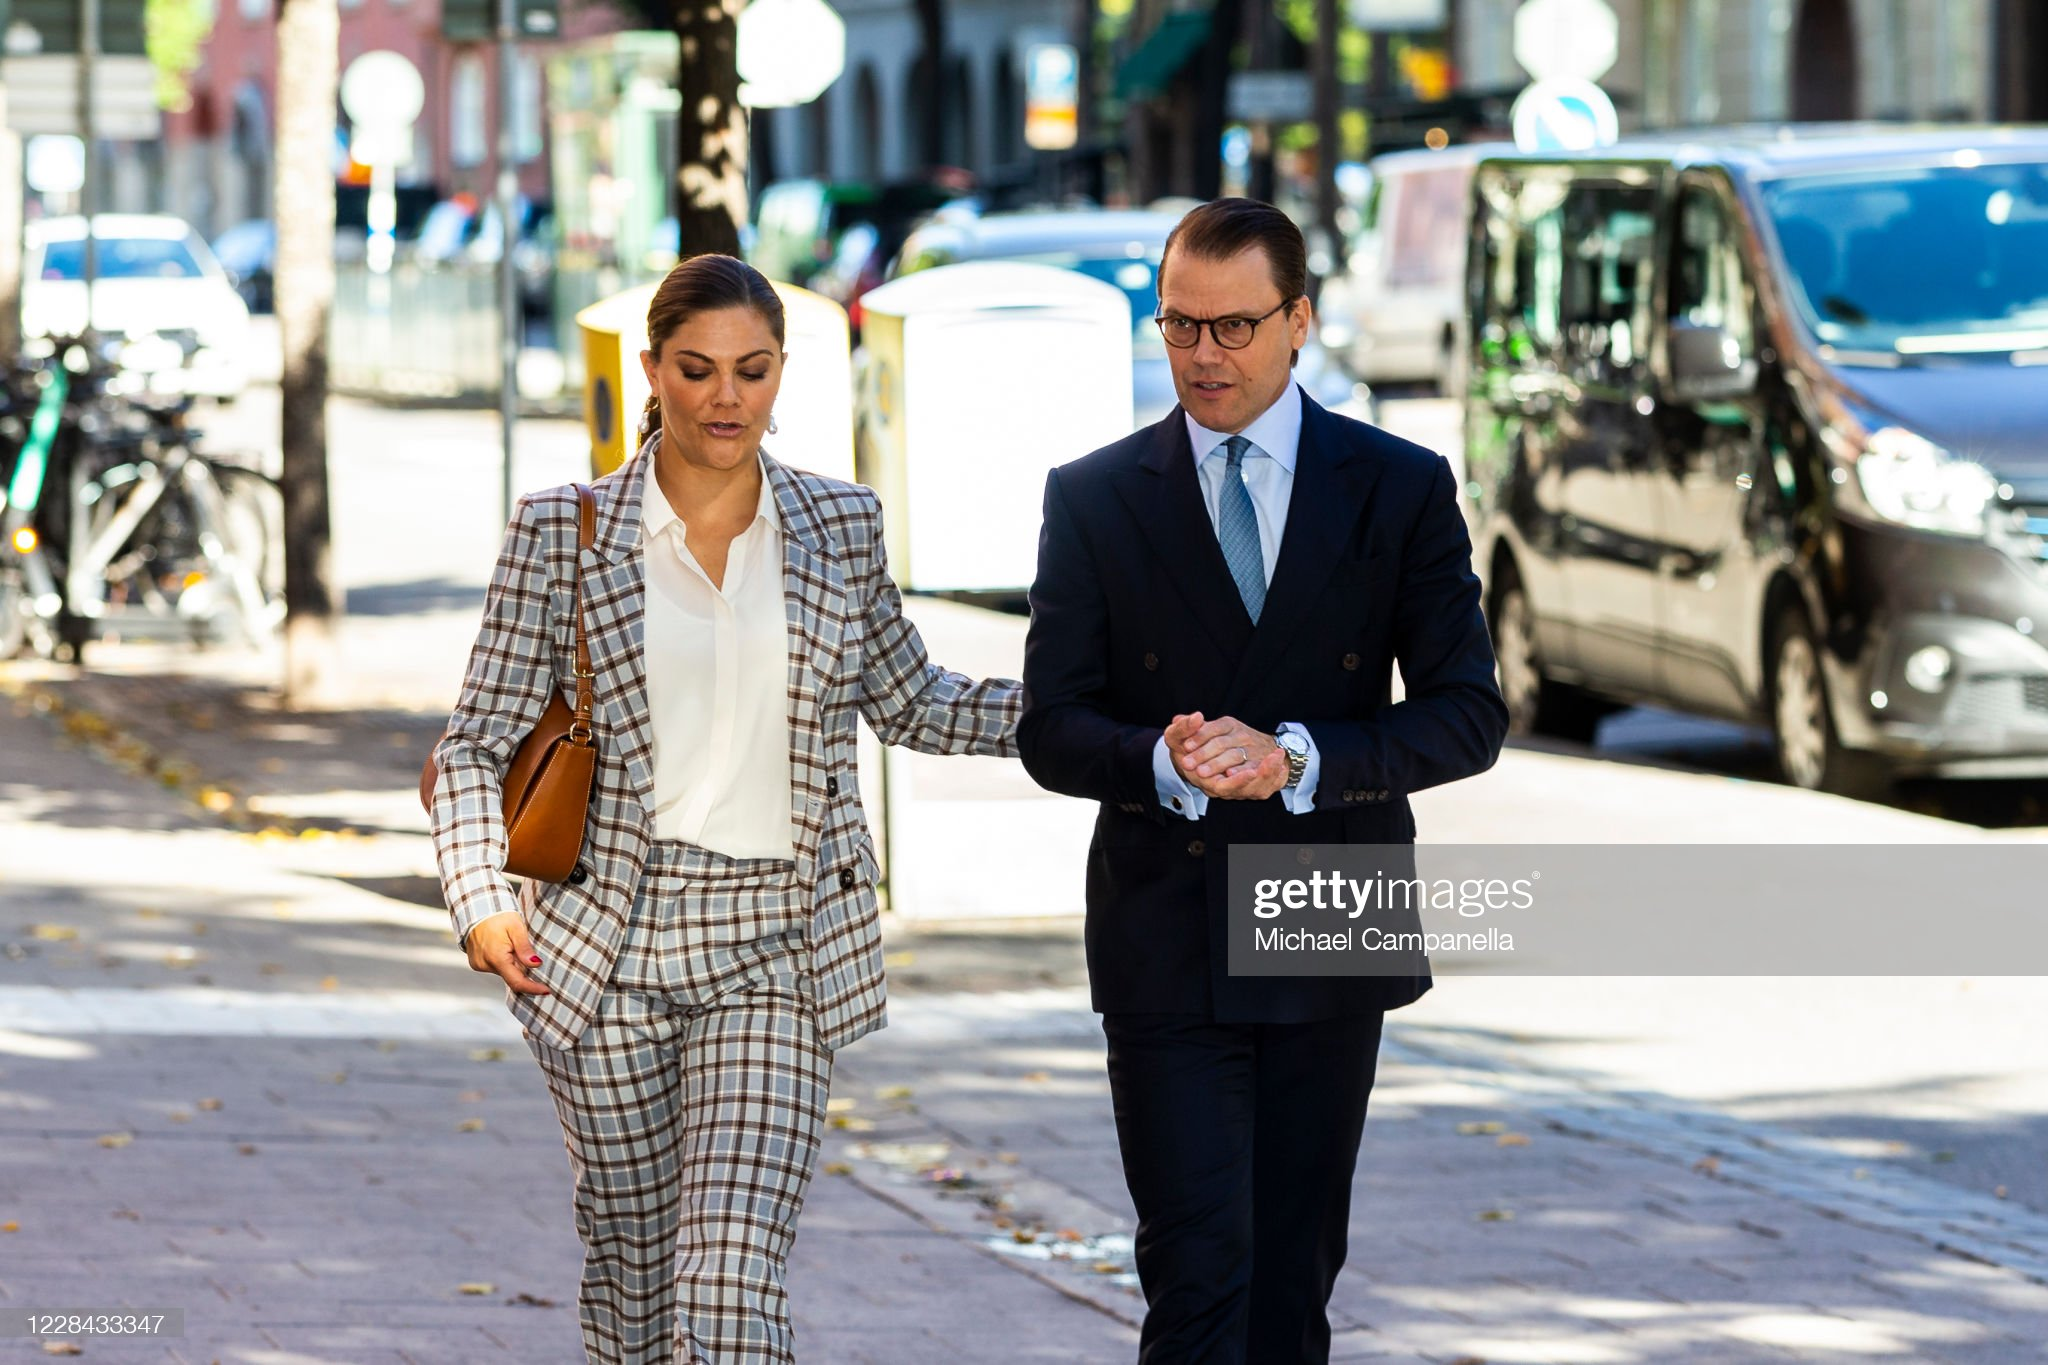 crown-princess-victoria-and-prince-daniel-of-sweden-visit-the-swedish-picture-id1228433347